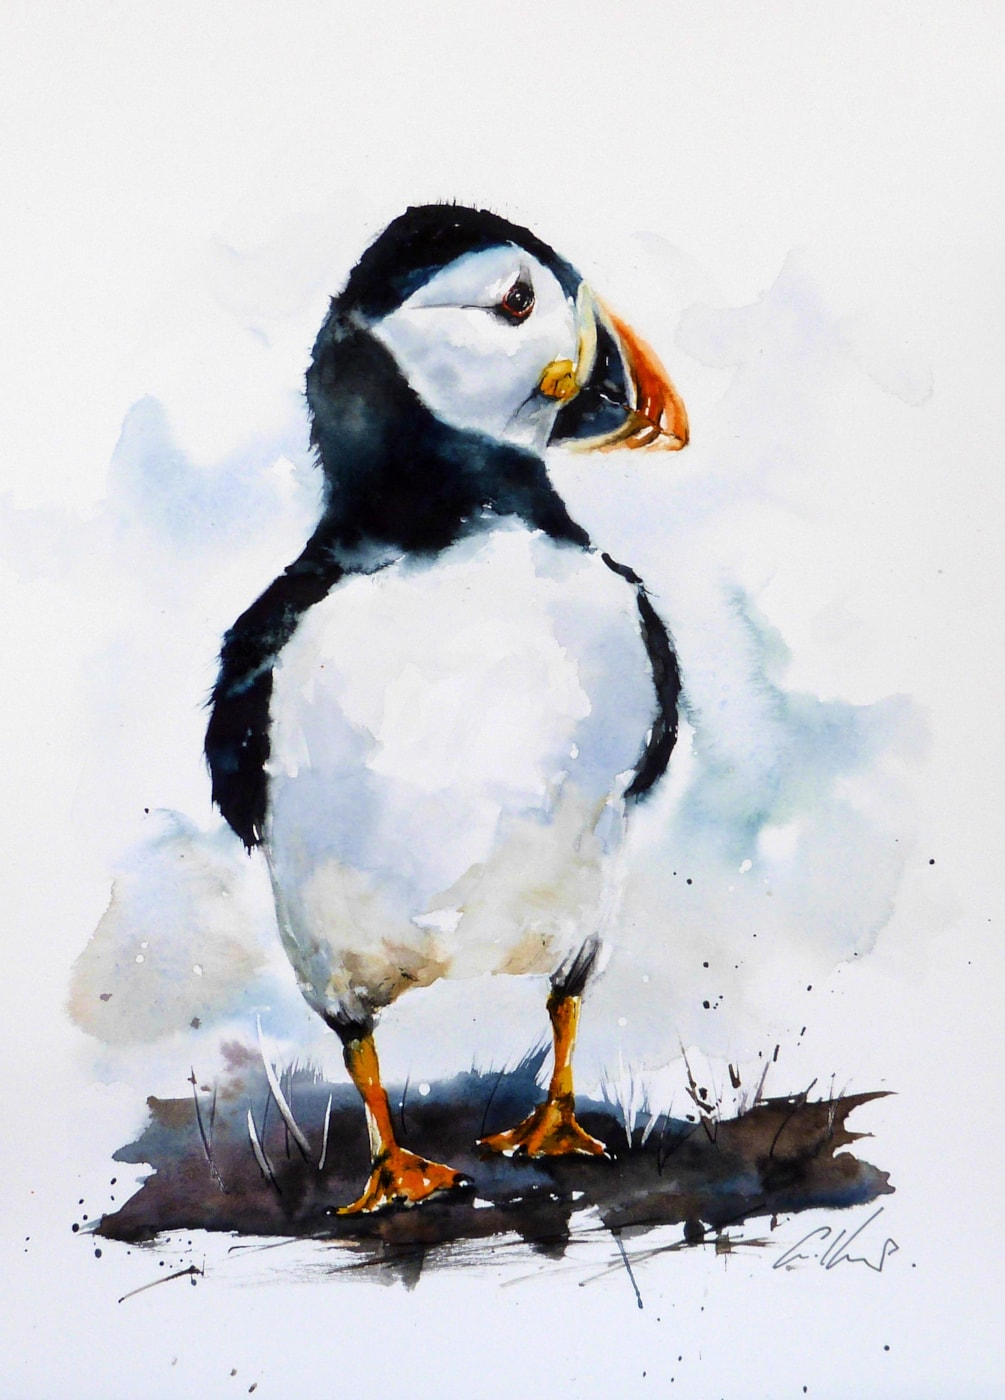 A Puffin, watercolour by Graham Kemp. 1.